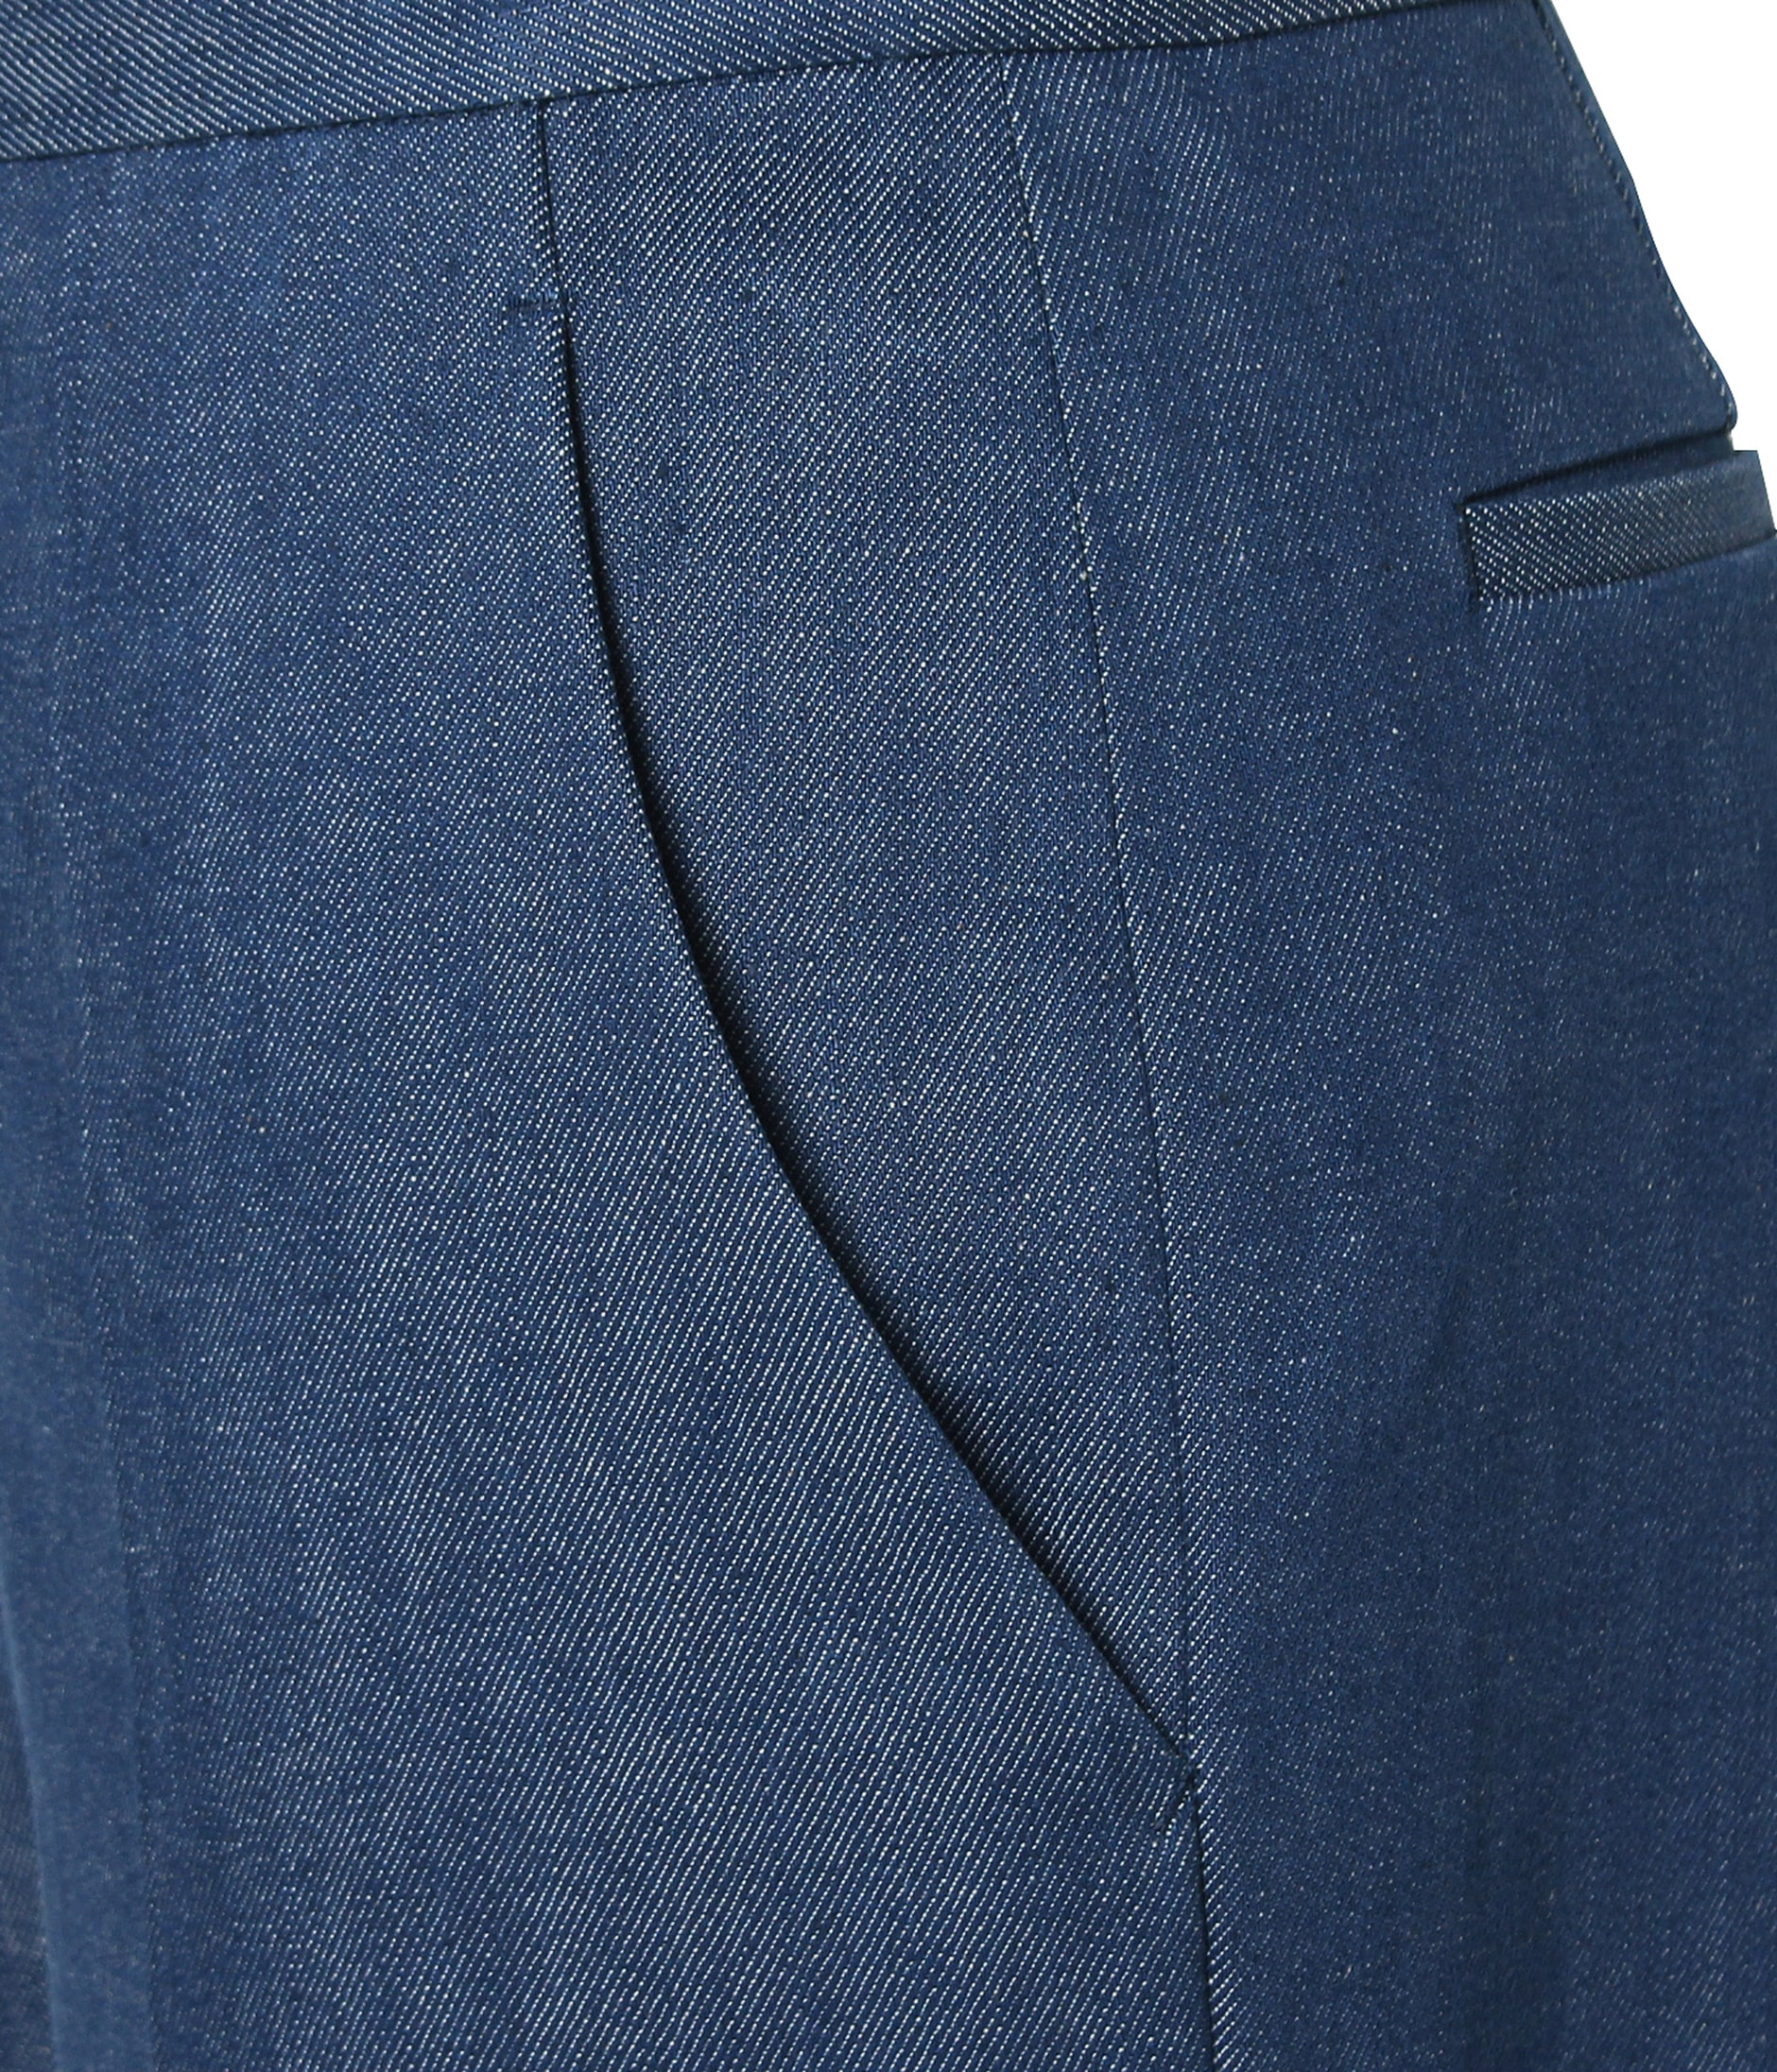 CATALINA TROUSERS 詳細画像 BLUE 6